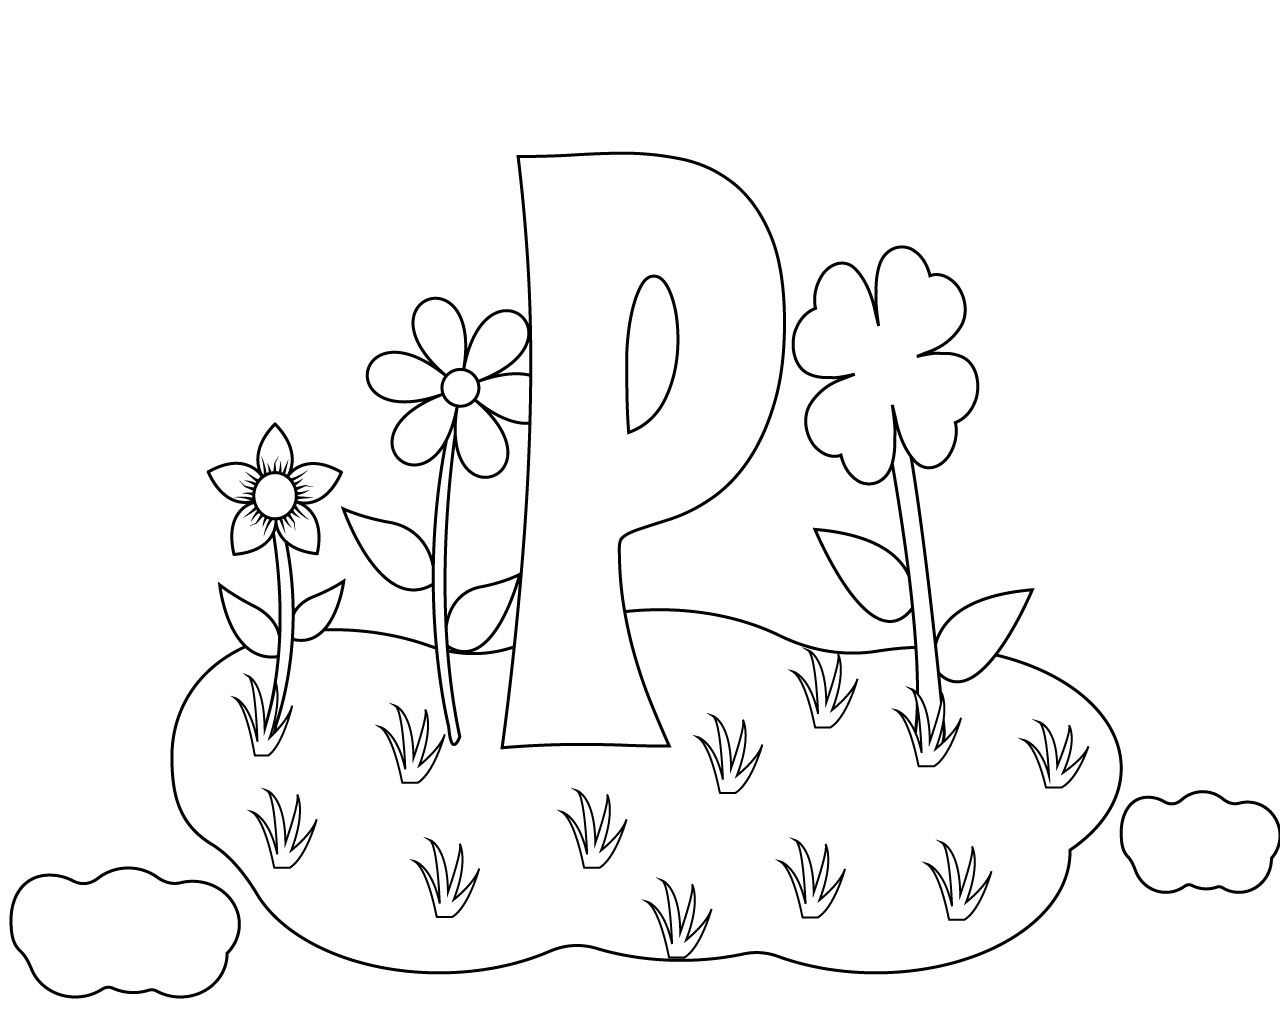 Letter P Coloring Pages Free Pokemon Coloring Pages Coloring Pages Free Printable Letters